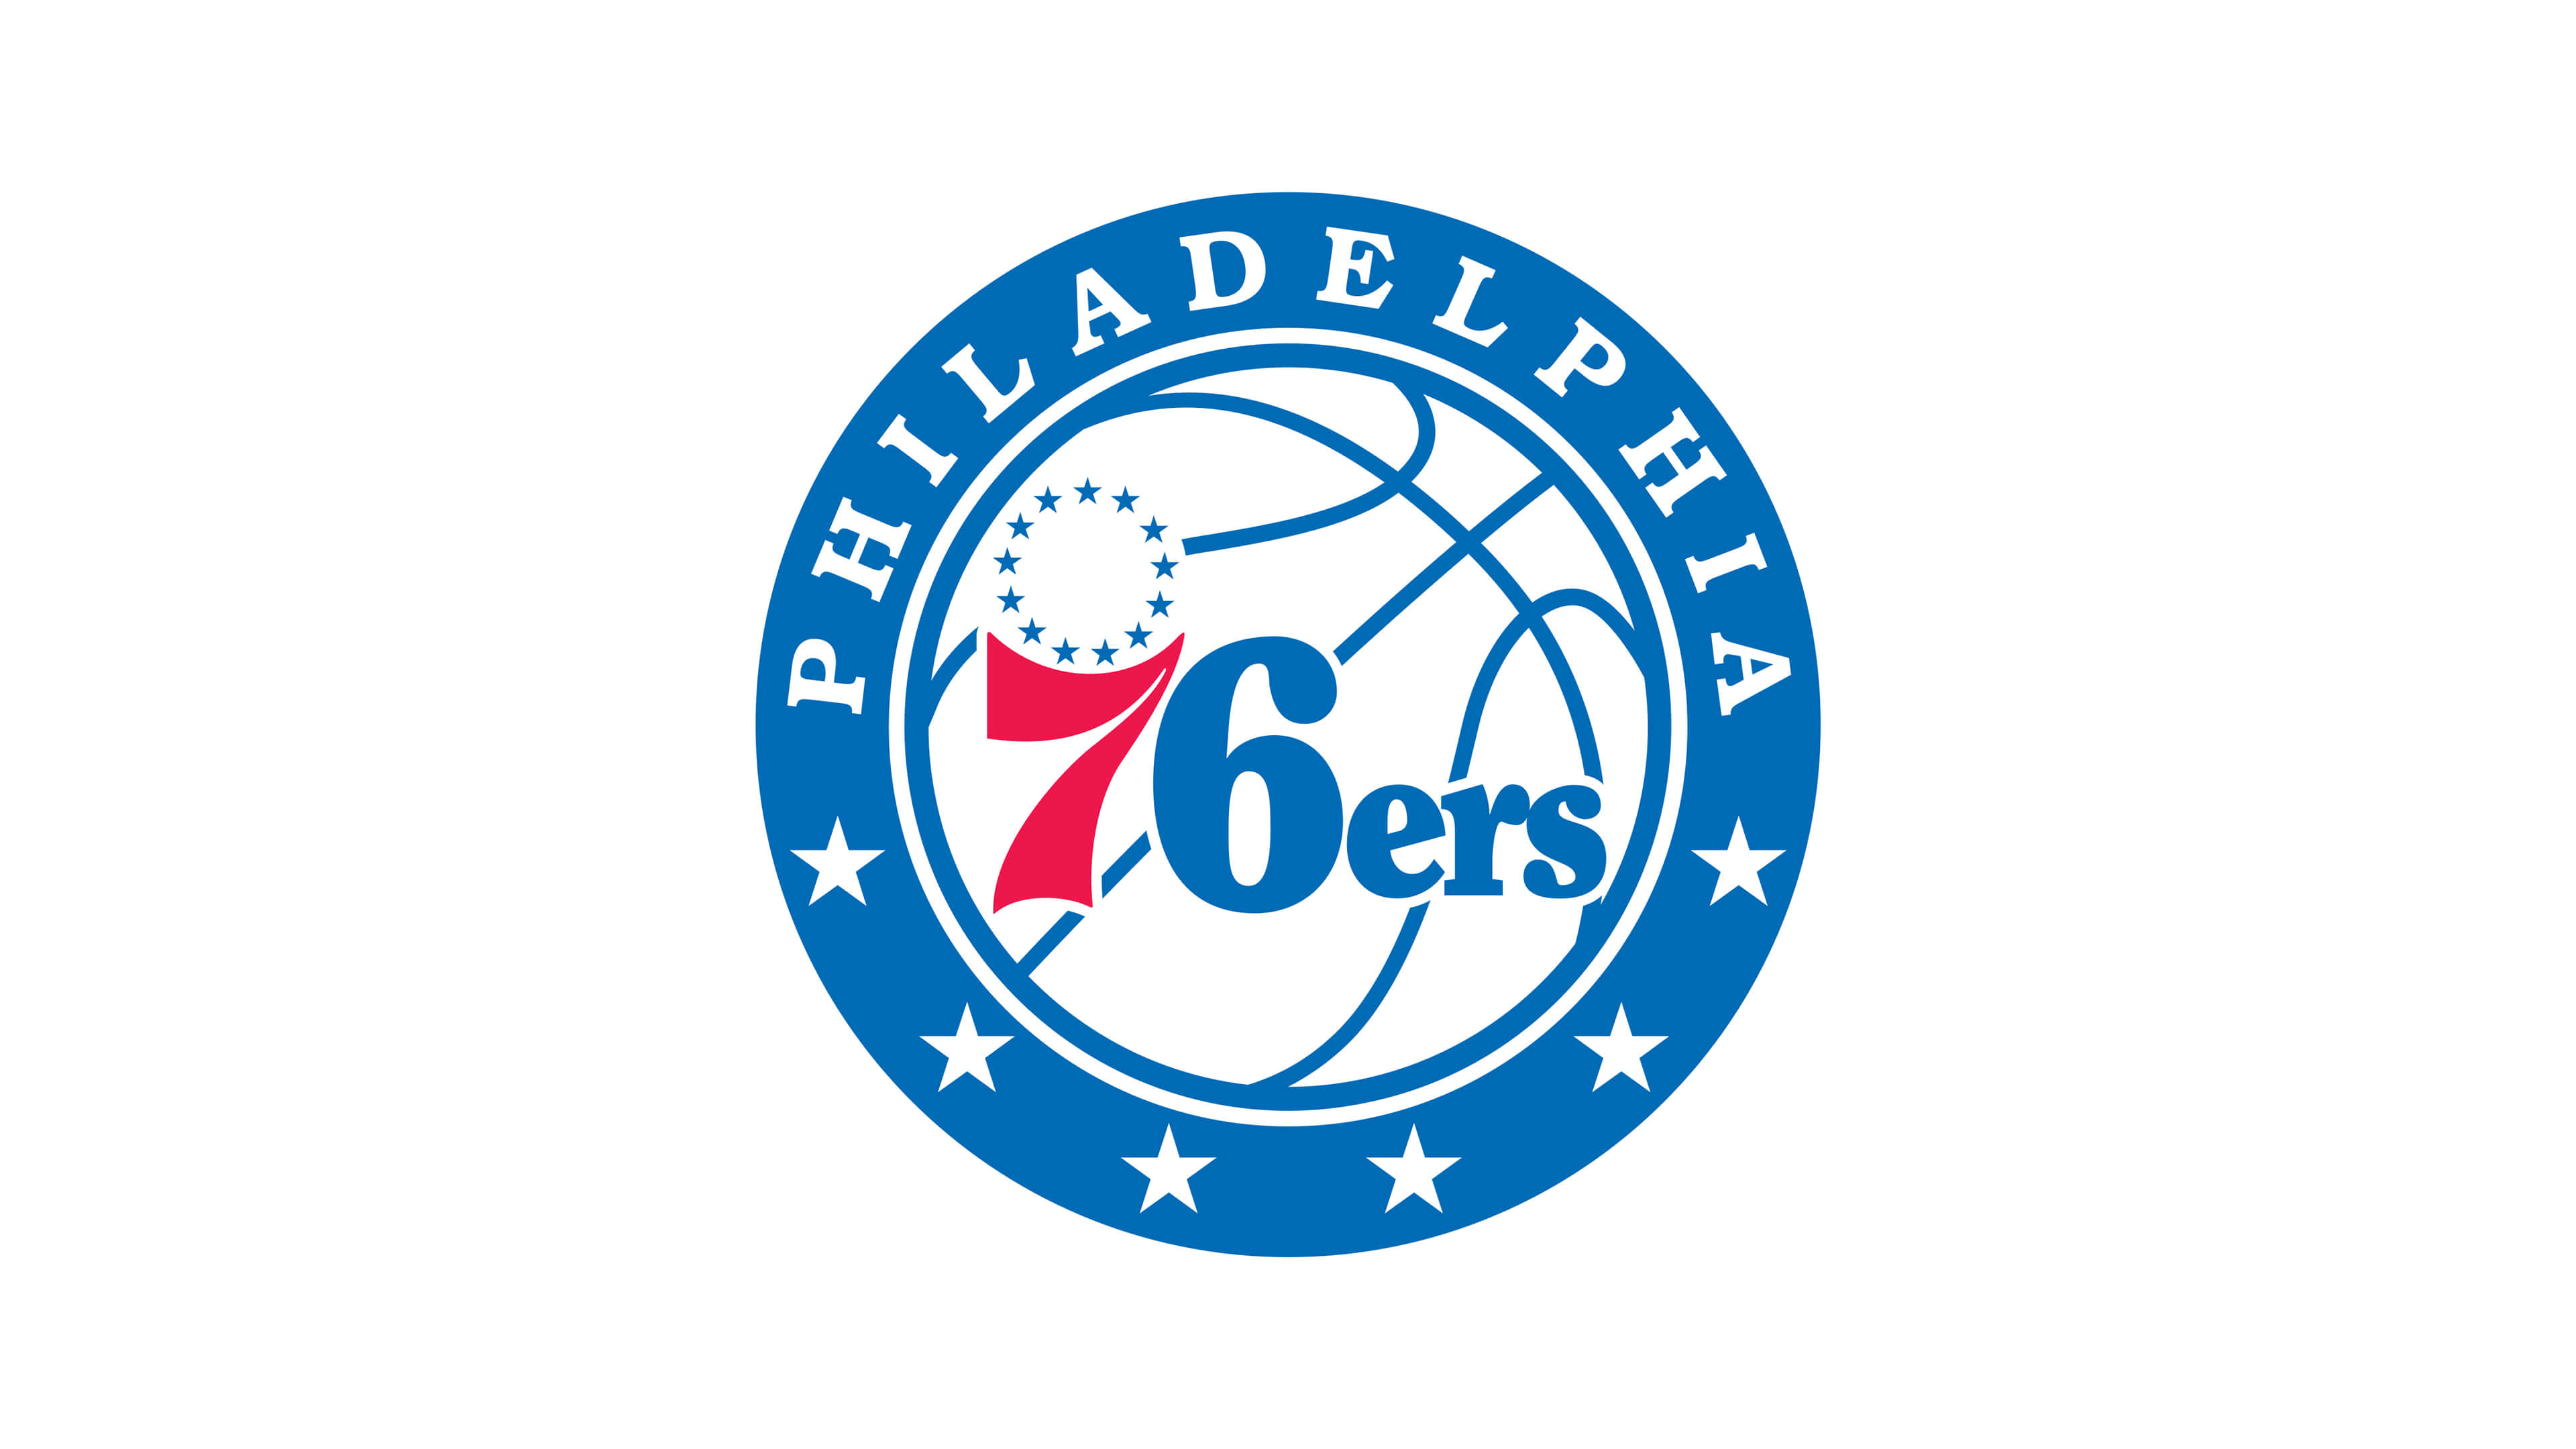 philadelphia 76ers nba logo uhd 4k wallpaper